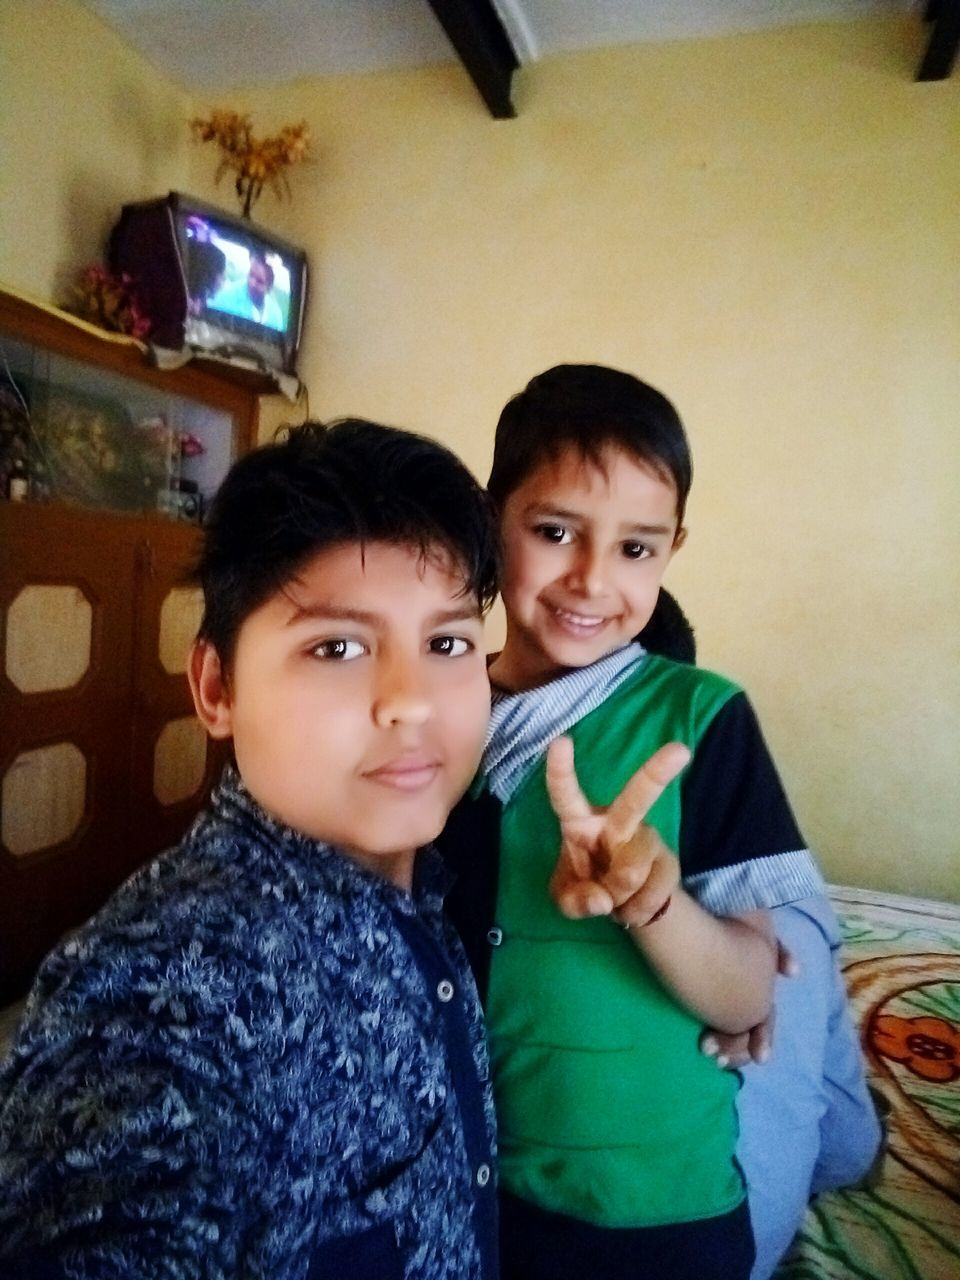 looking at camera, childhood, real people, togetherness, boys, elementary age, family with one child, indoors, family, mother, portrait, love, bonding, smiling, home interior, girls, leisure activity, daughter, happiness, lifestyles, son, casual clothing, front view, cute, bed, young adult, day